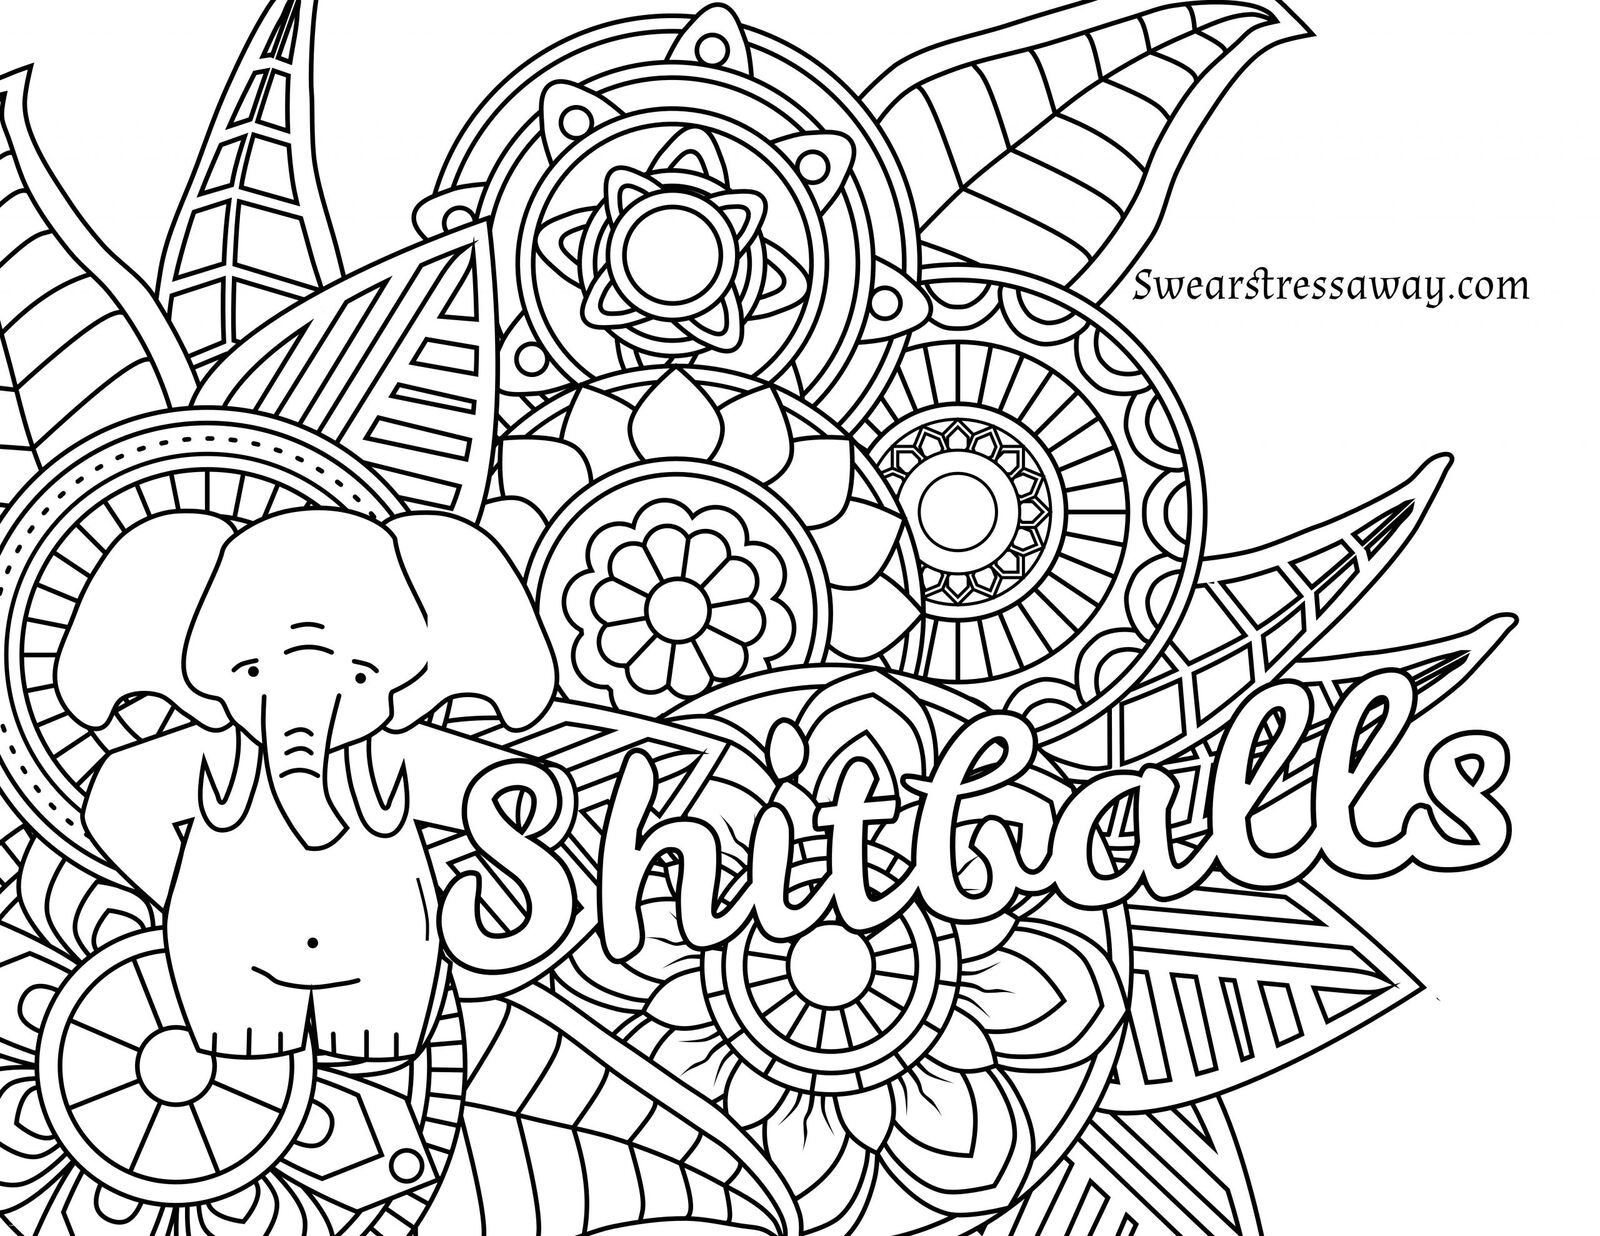 ree-printable-coloring-books-for-adults-pdf-scaled.jpg